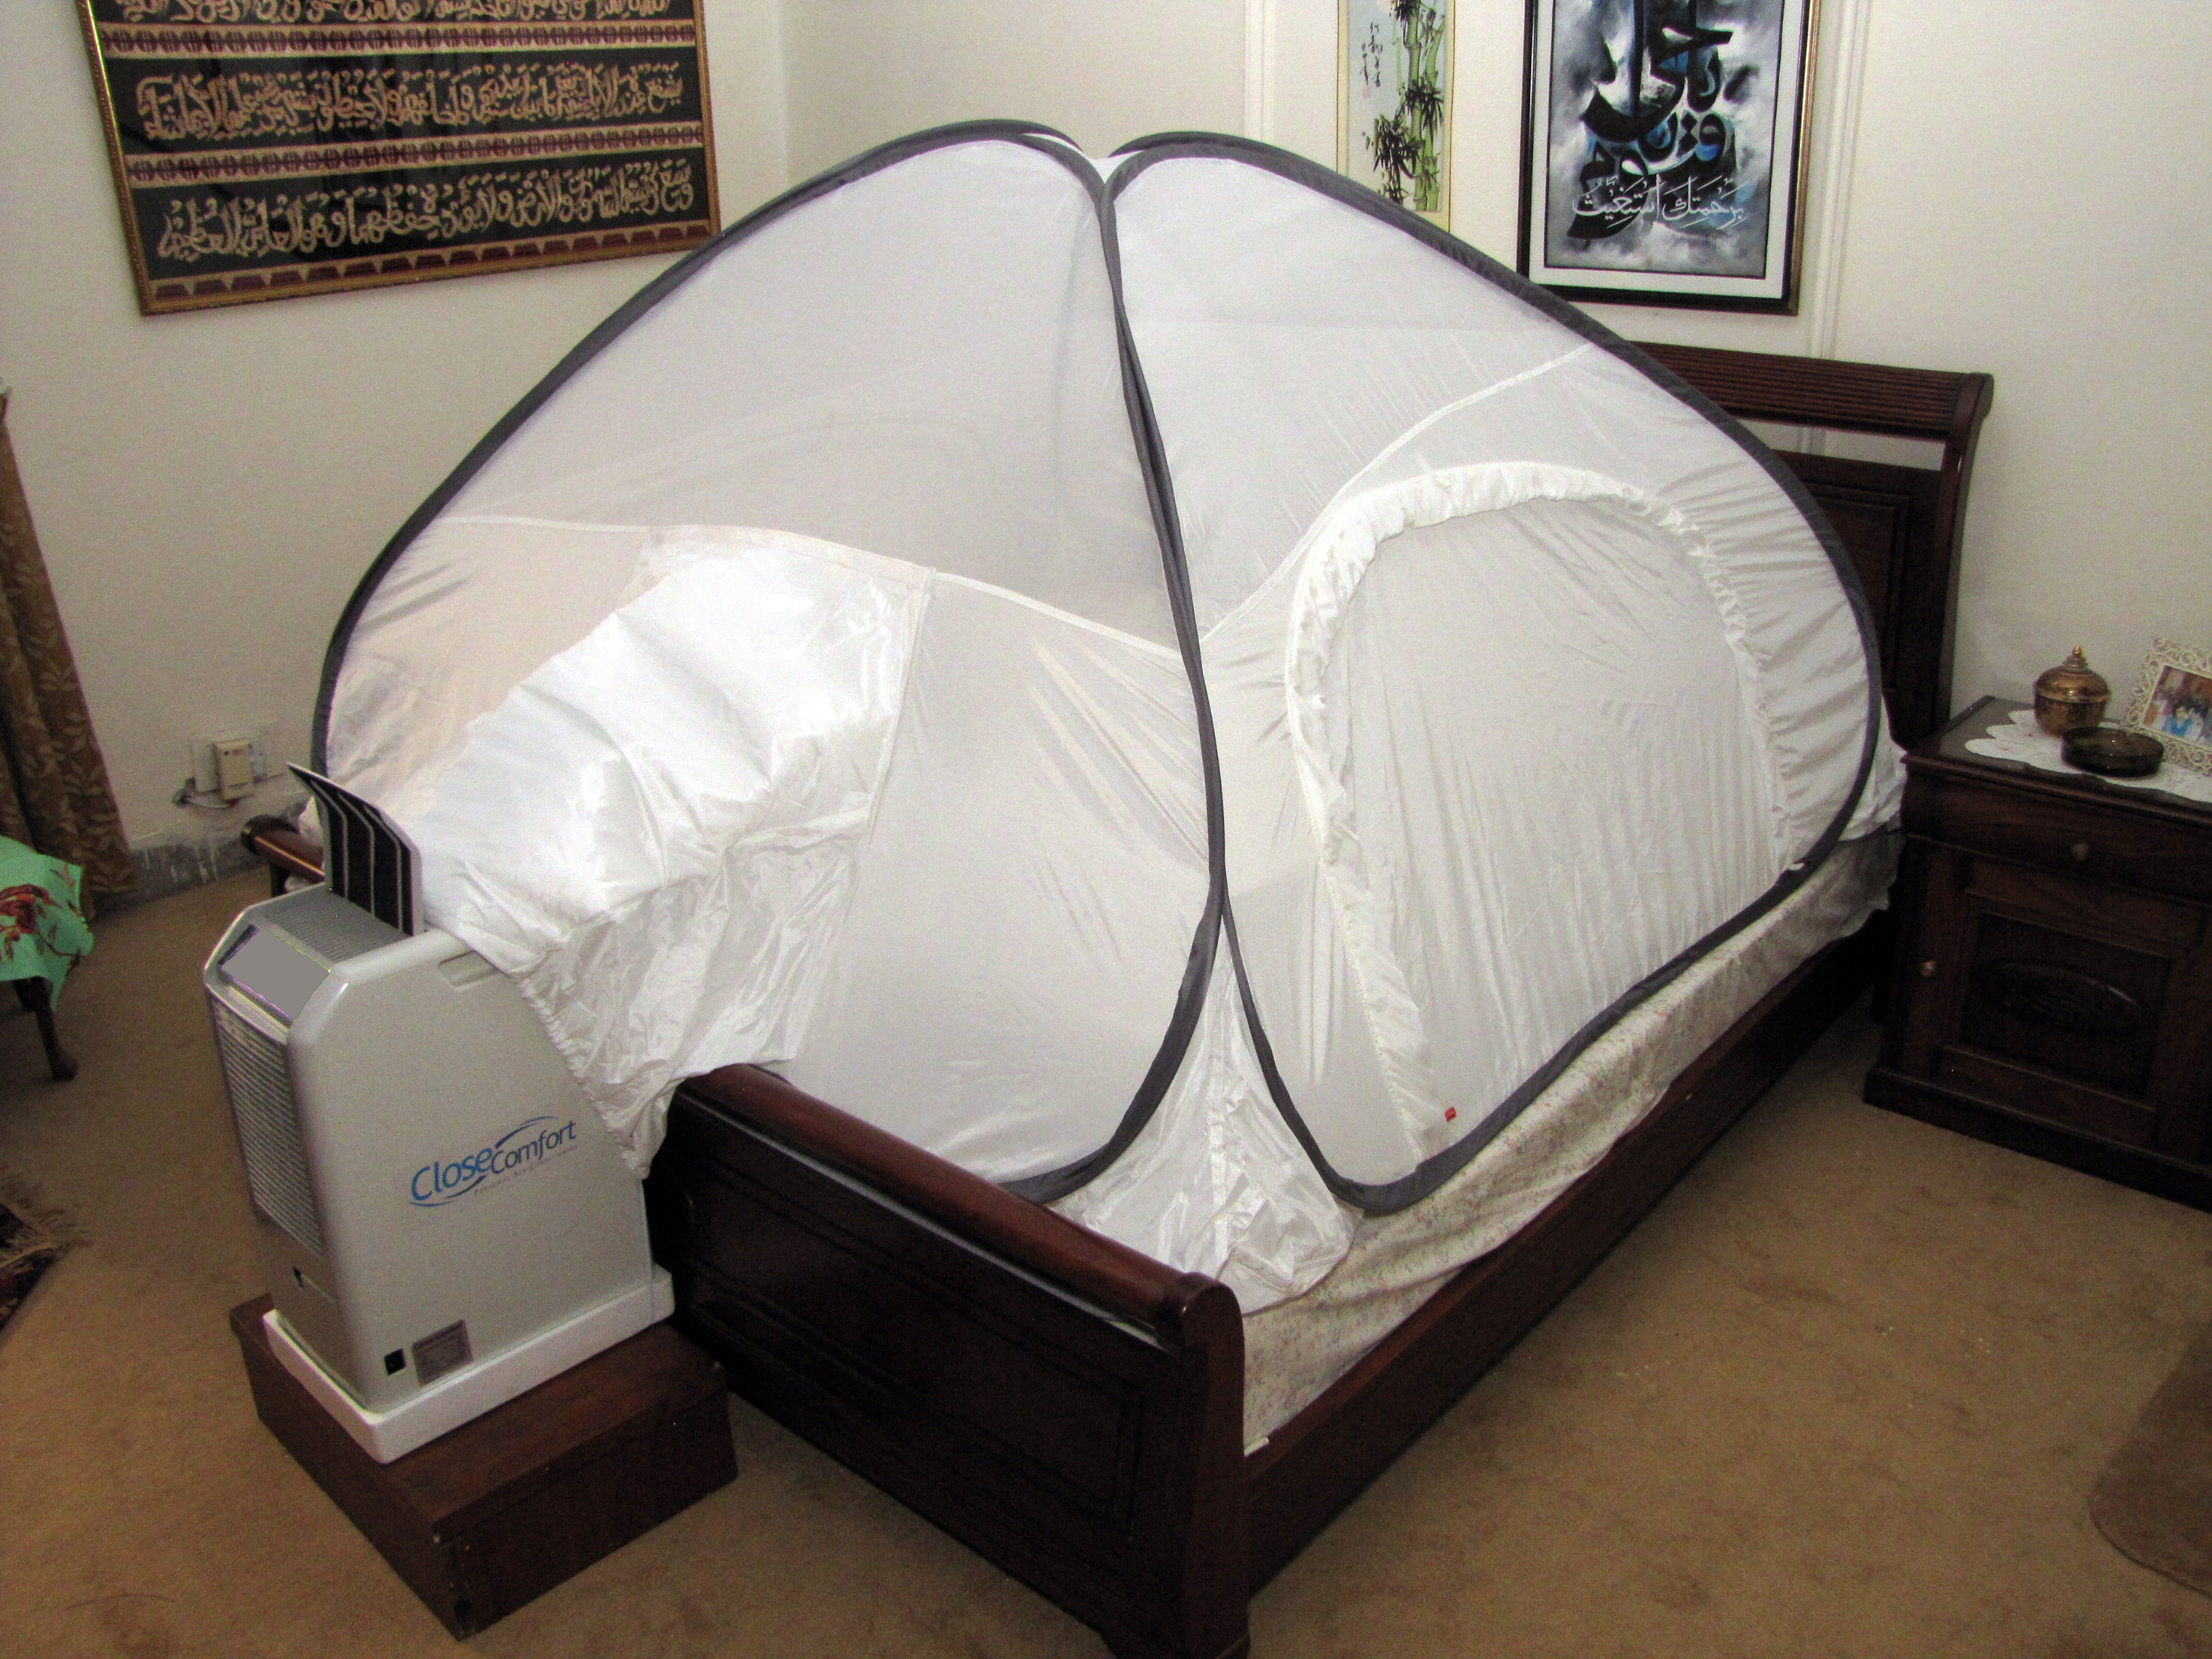 Energy-Saver PC8 Air Conditioner with Free Pyramid Tent